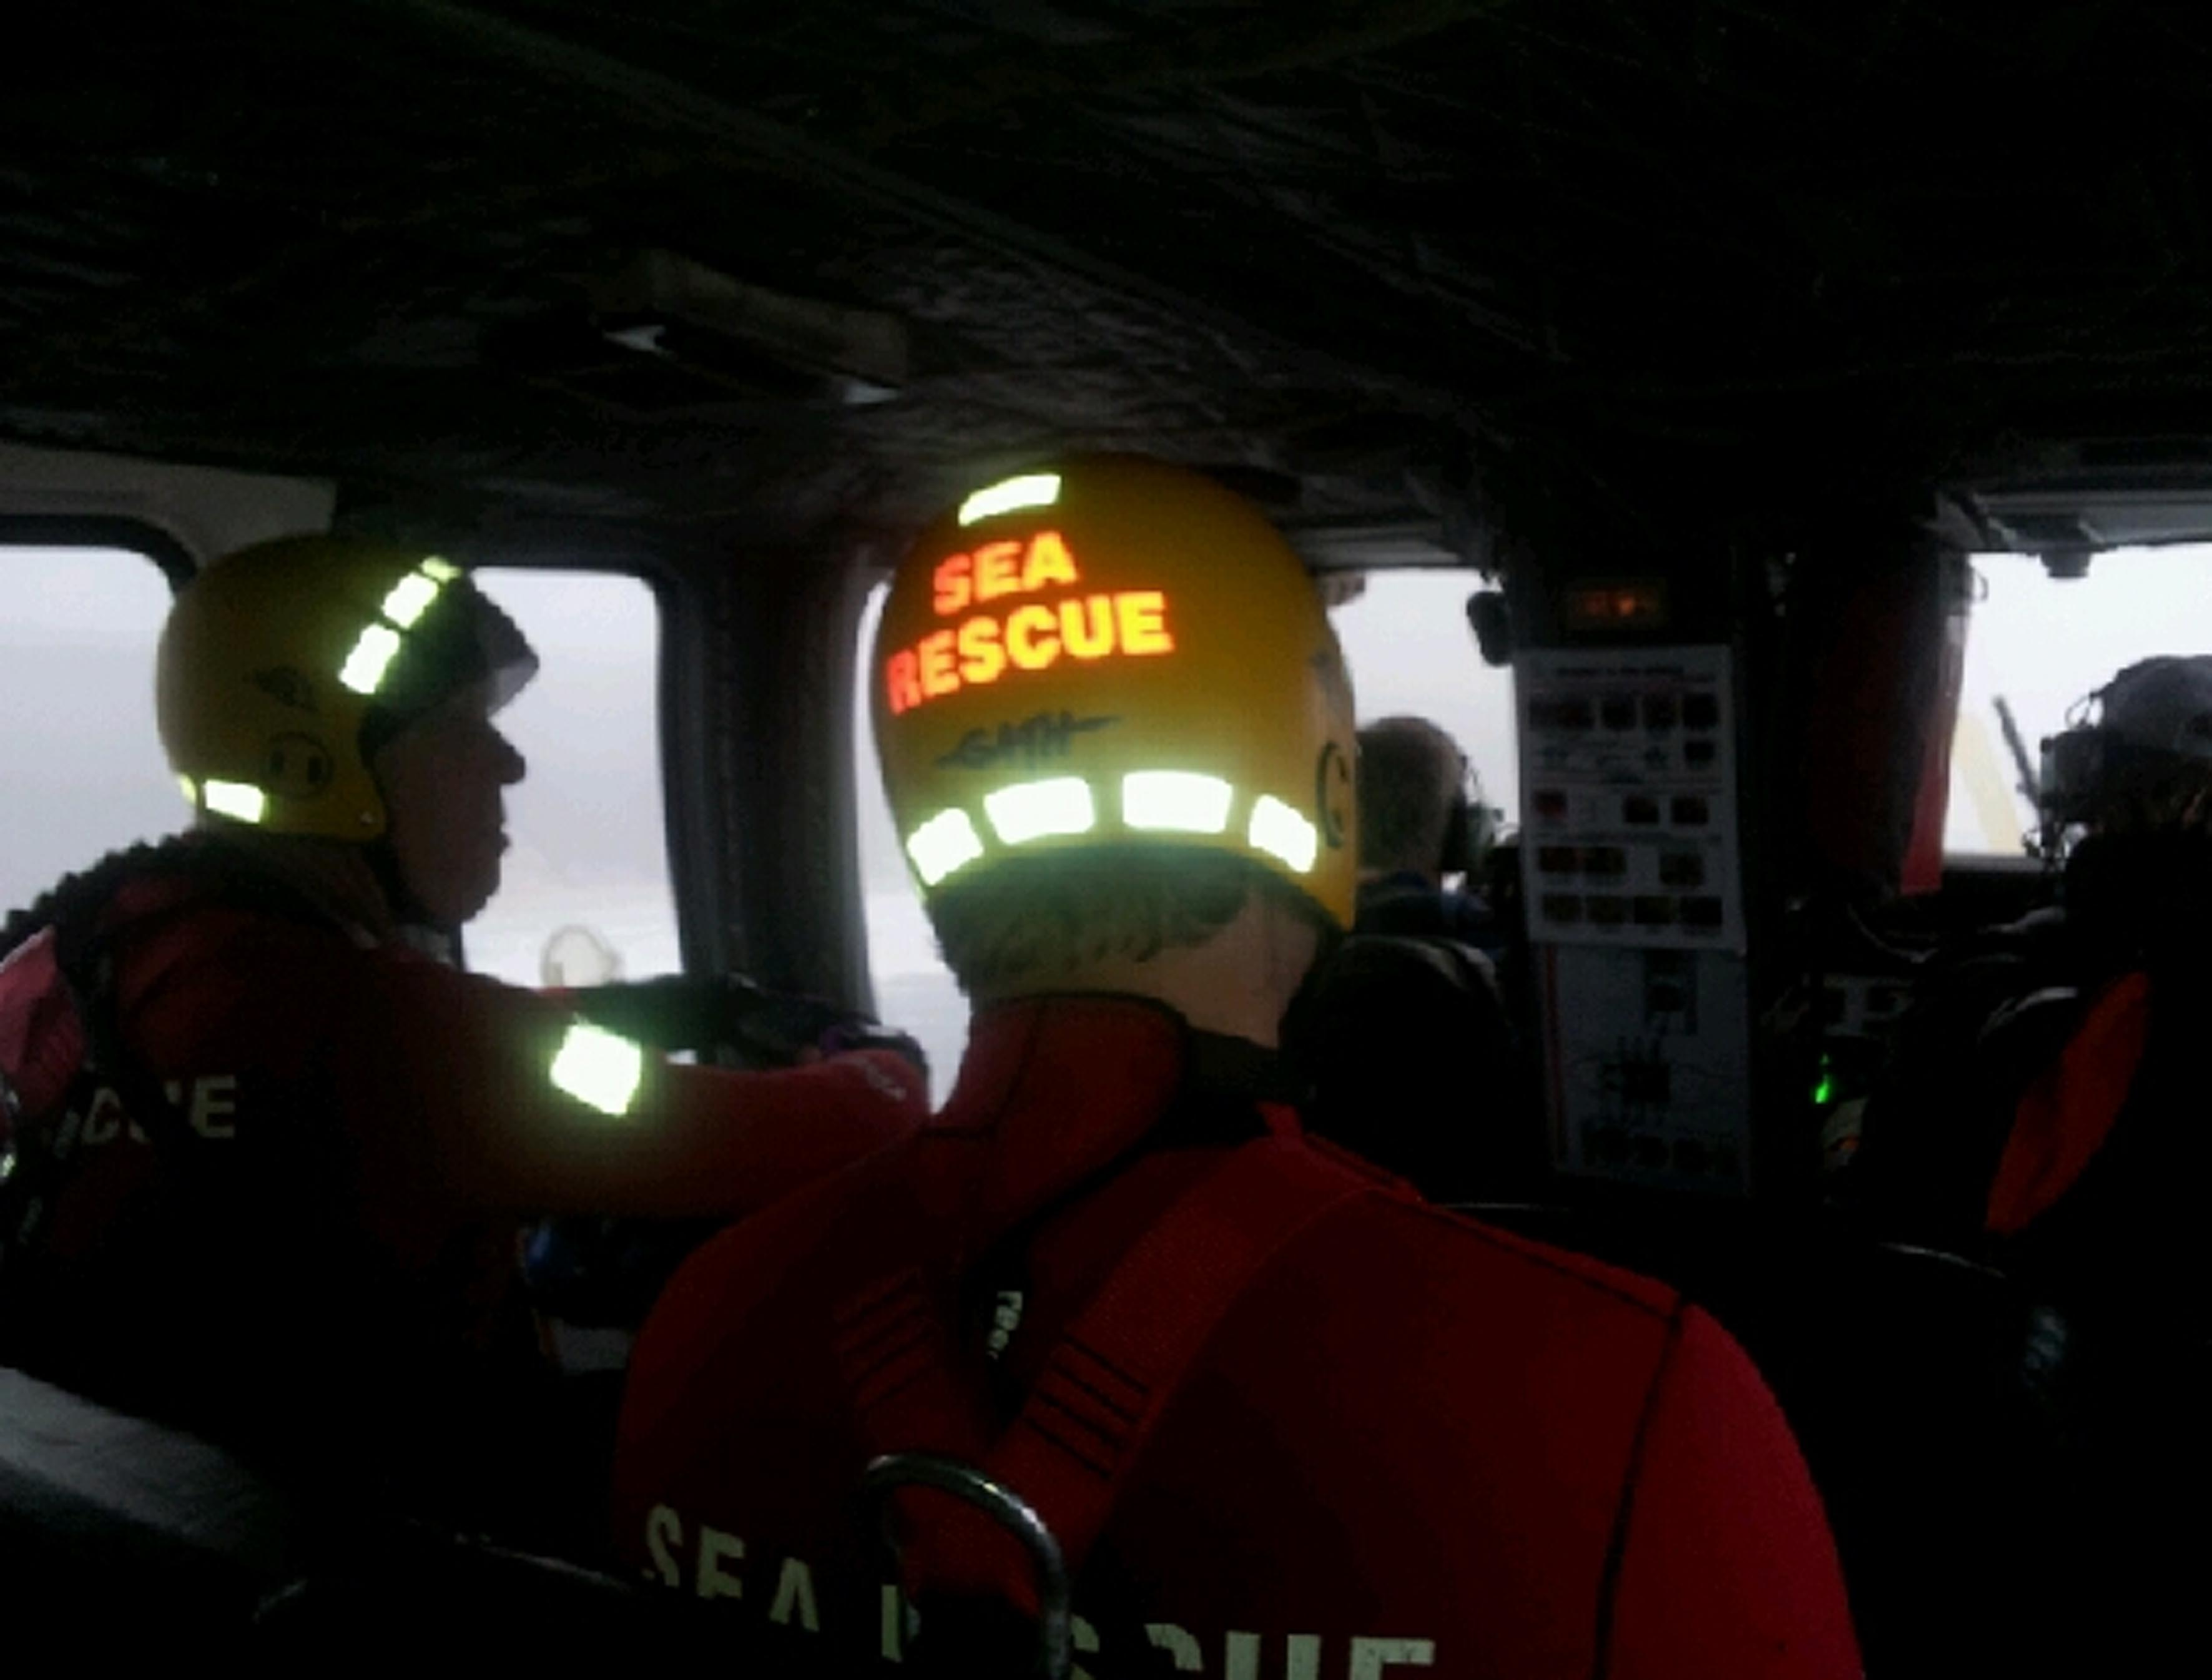 Sea Rescue swimmers aboard the helicopter. All 19 crew members were safely ashore after being rescued off the ship KIANI SATU. They were airlifted off the ship by a Titan helicopters Sikorski 76 helicopter. Picture NSRI.